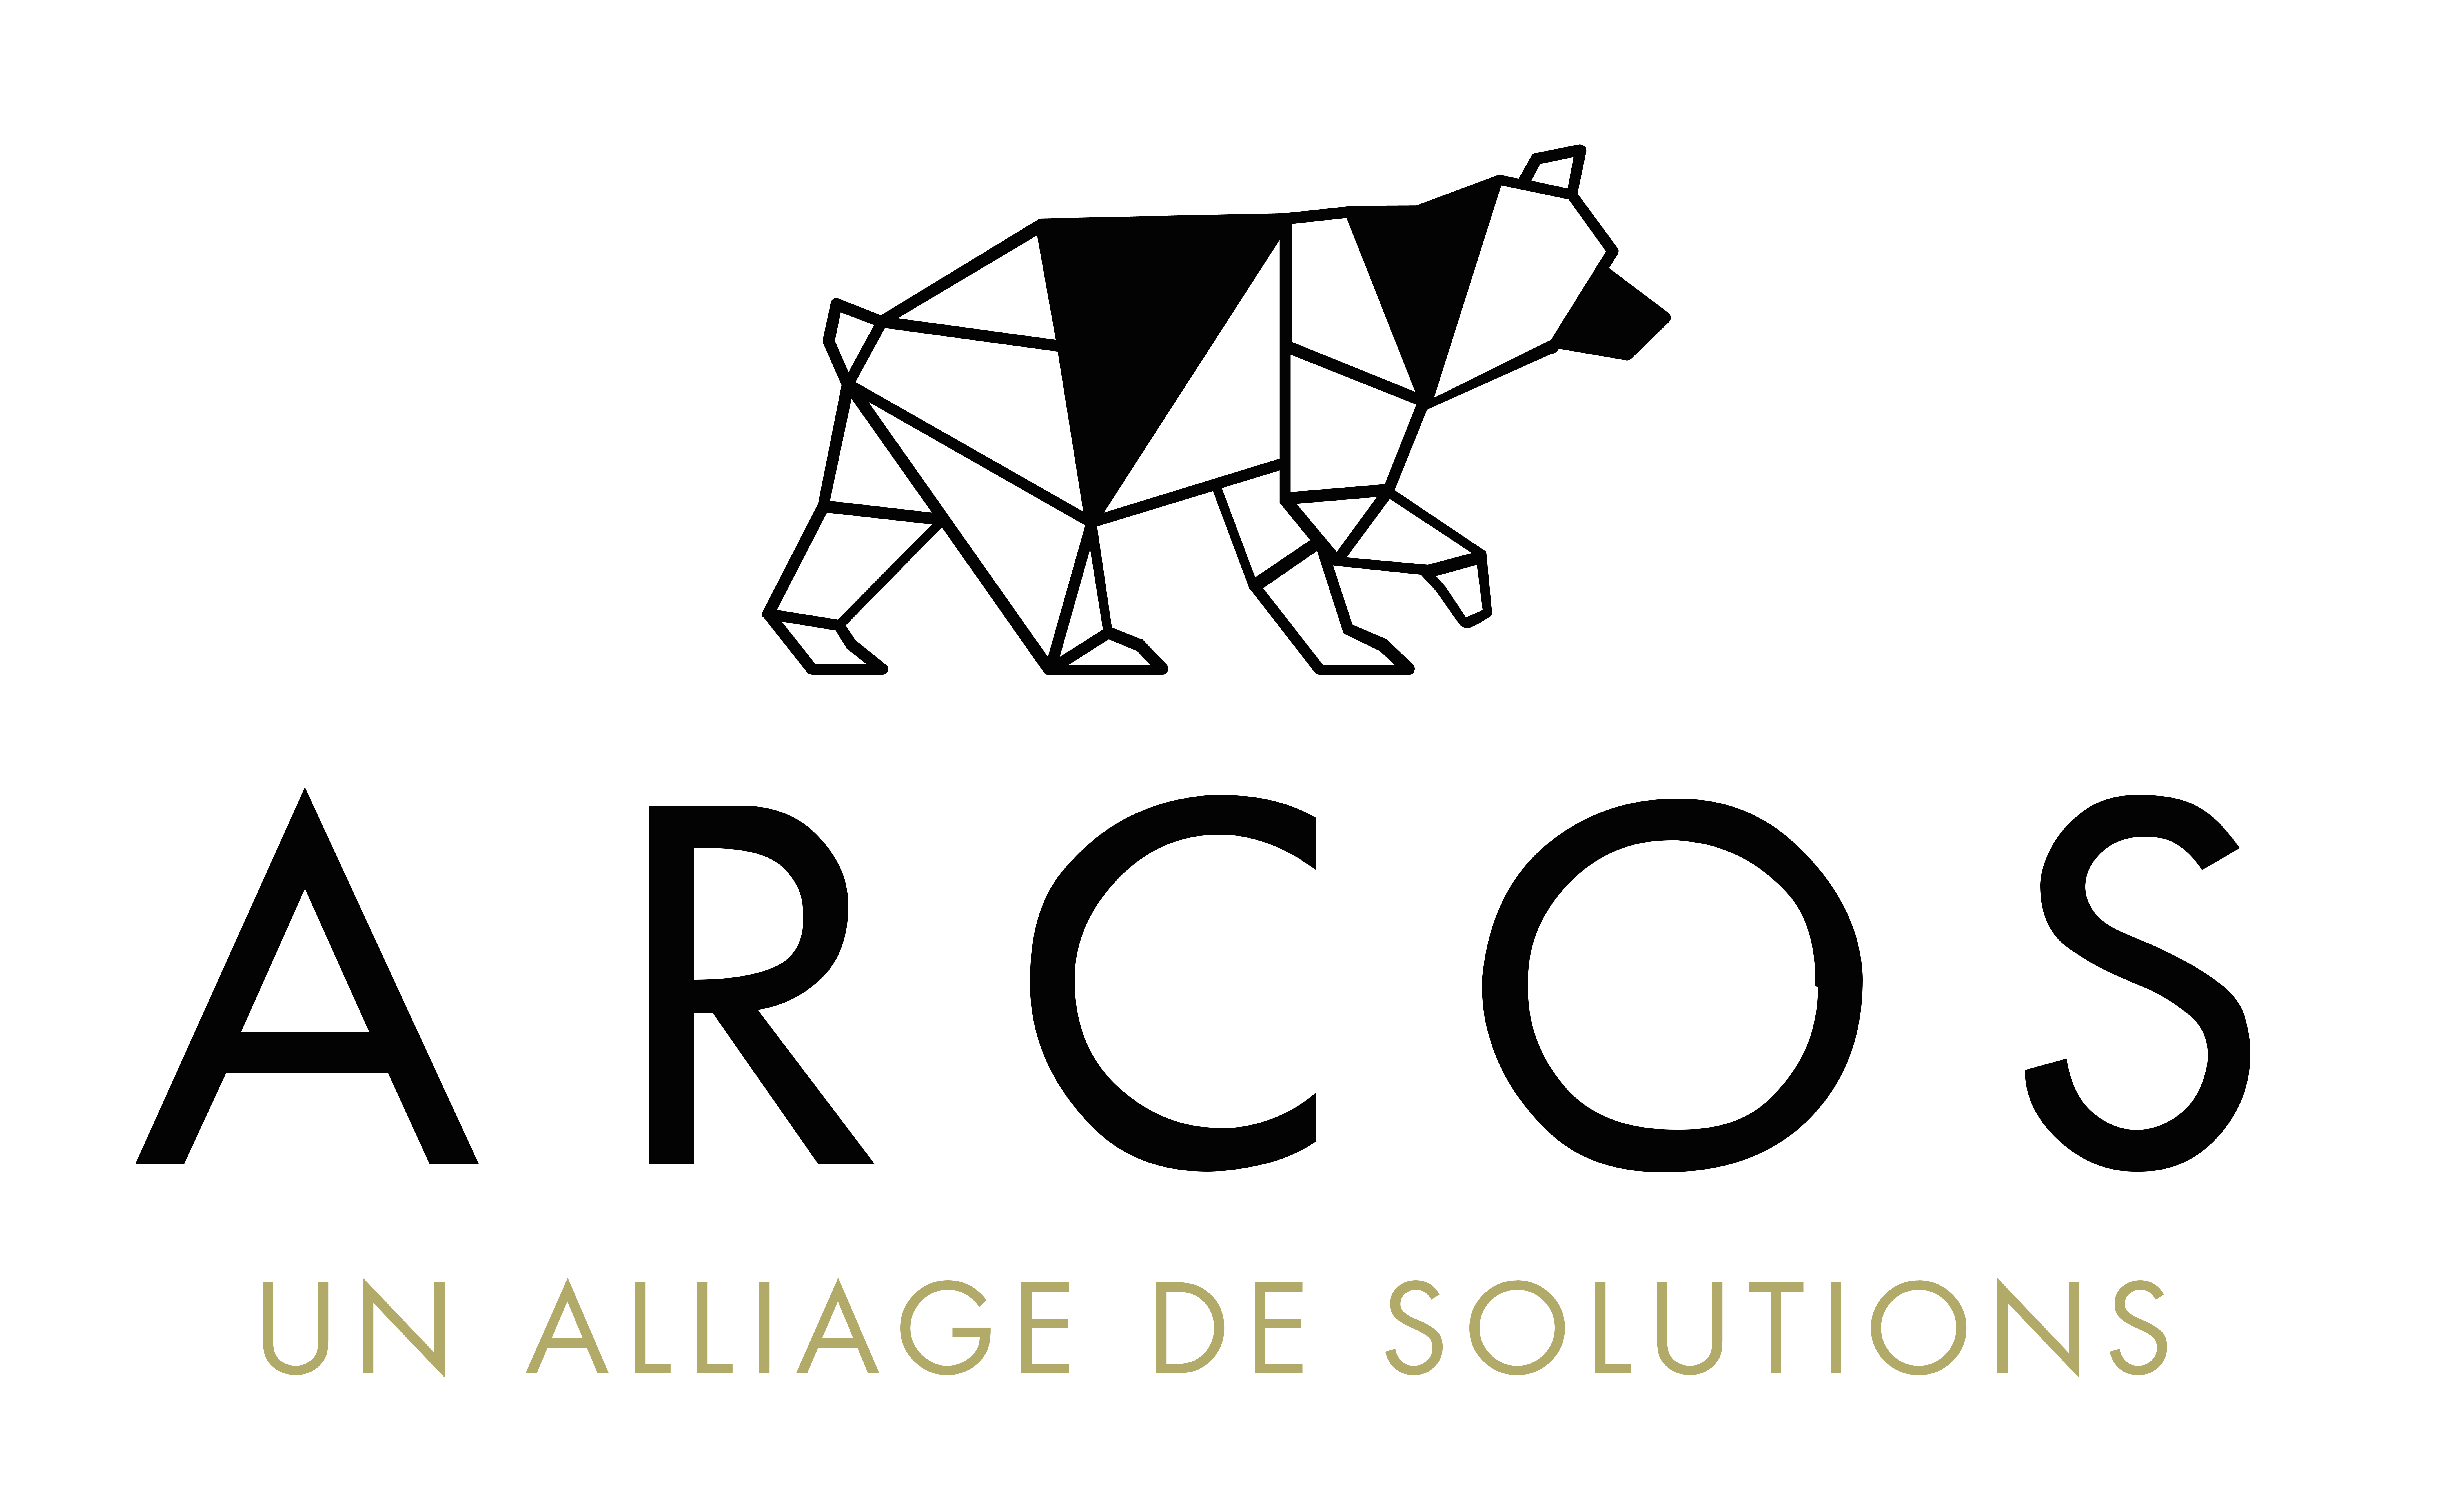 https://arcos-solution.com/wp-content/uploads/2021/07/Logotype-ANHOD-NOIR-OR.png